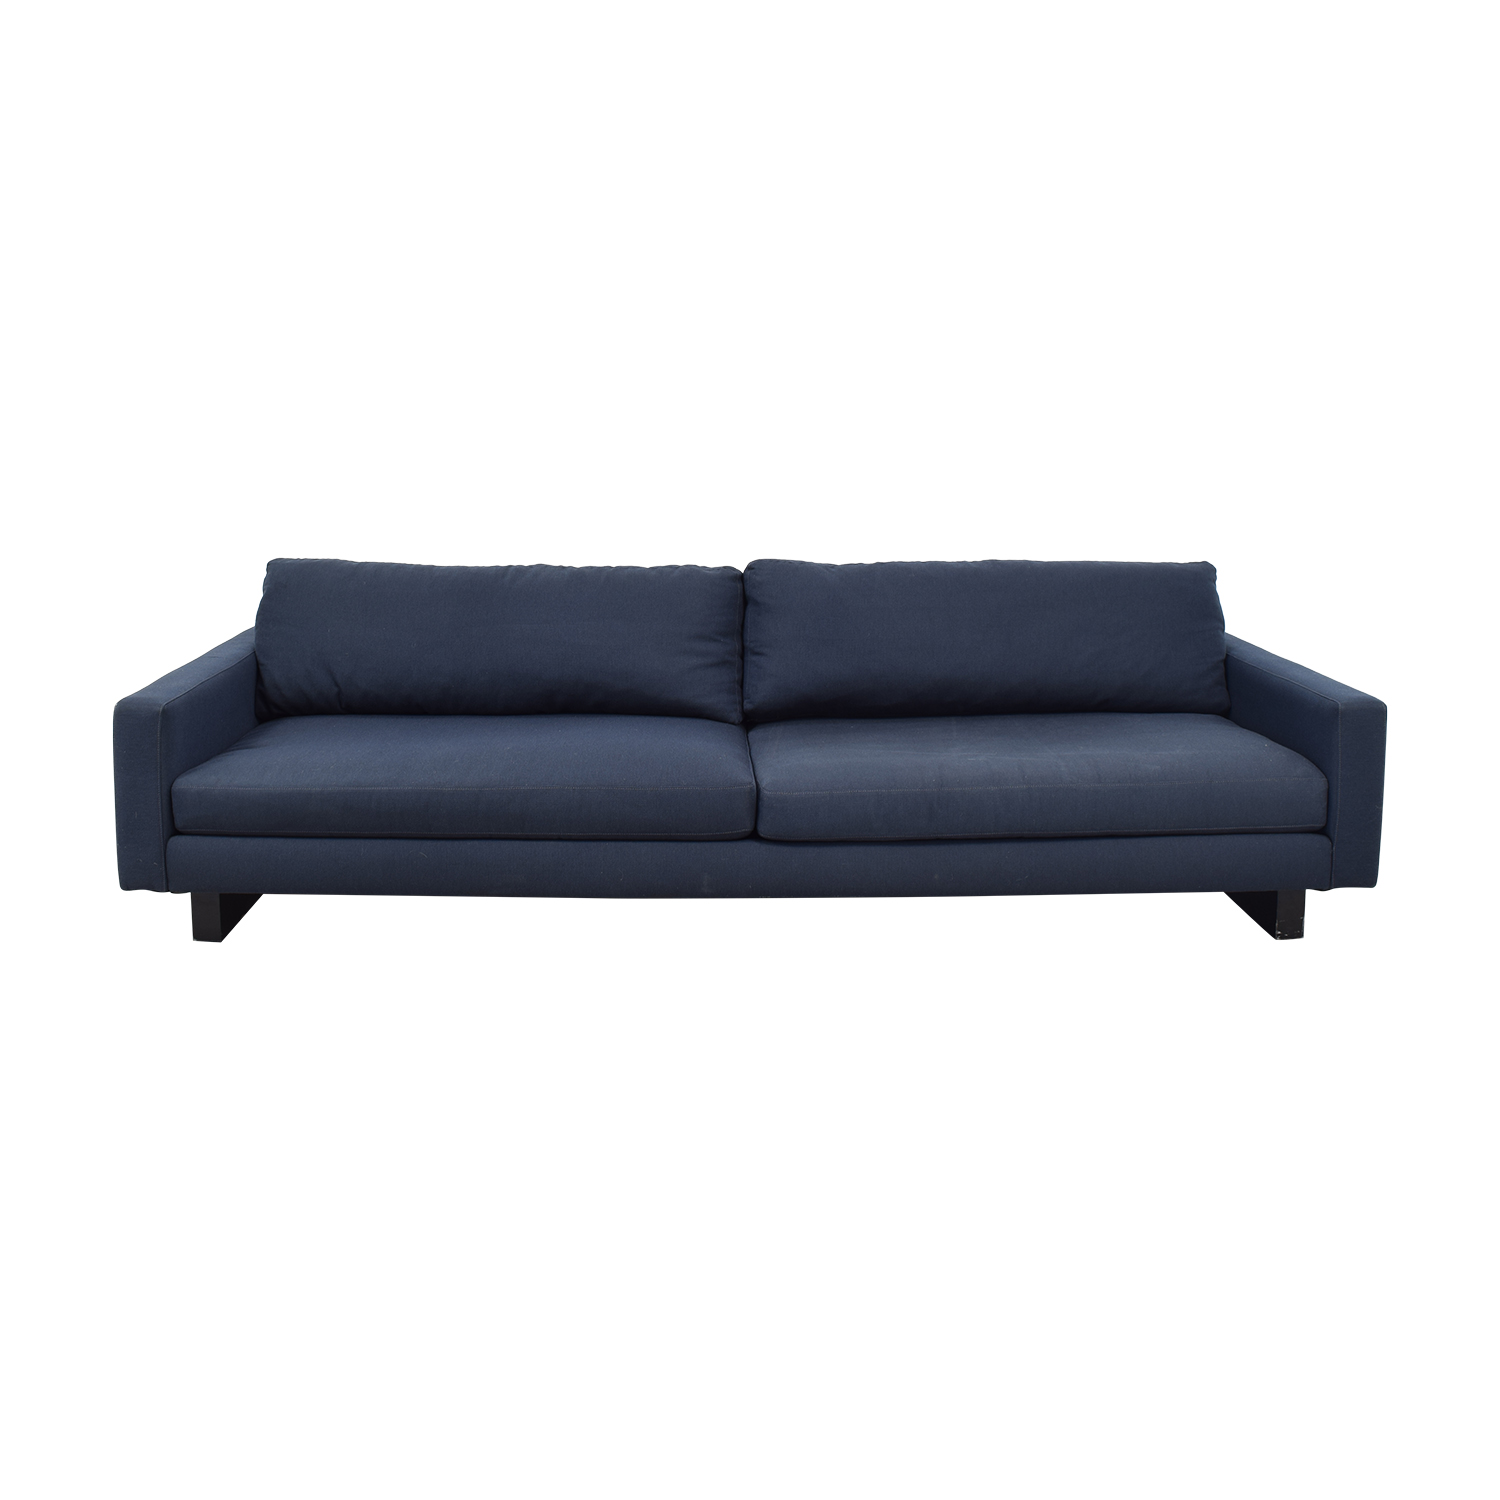 Room & Board Room & Board Hess Custom Sofa price